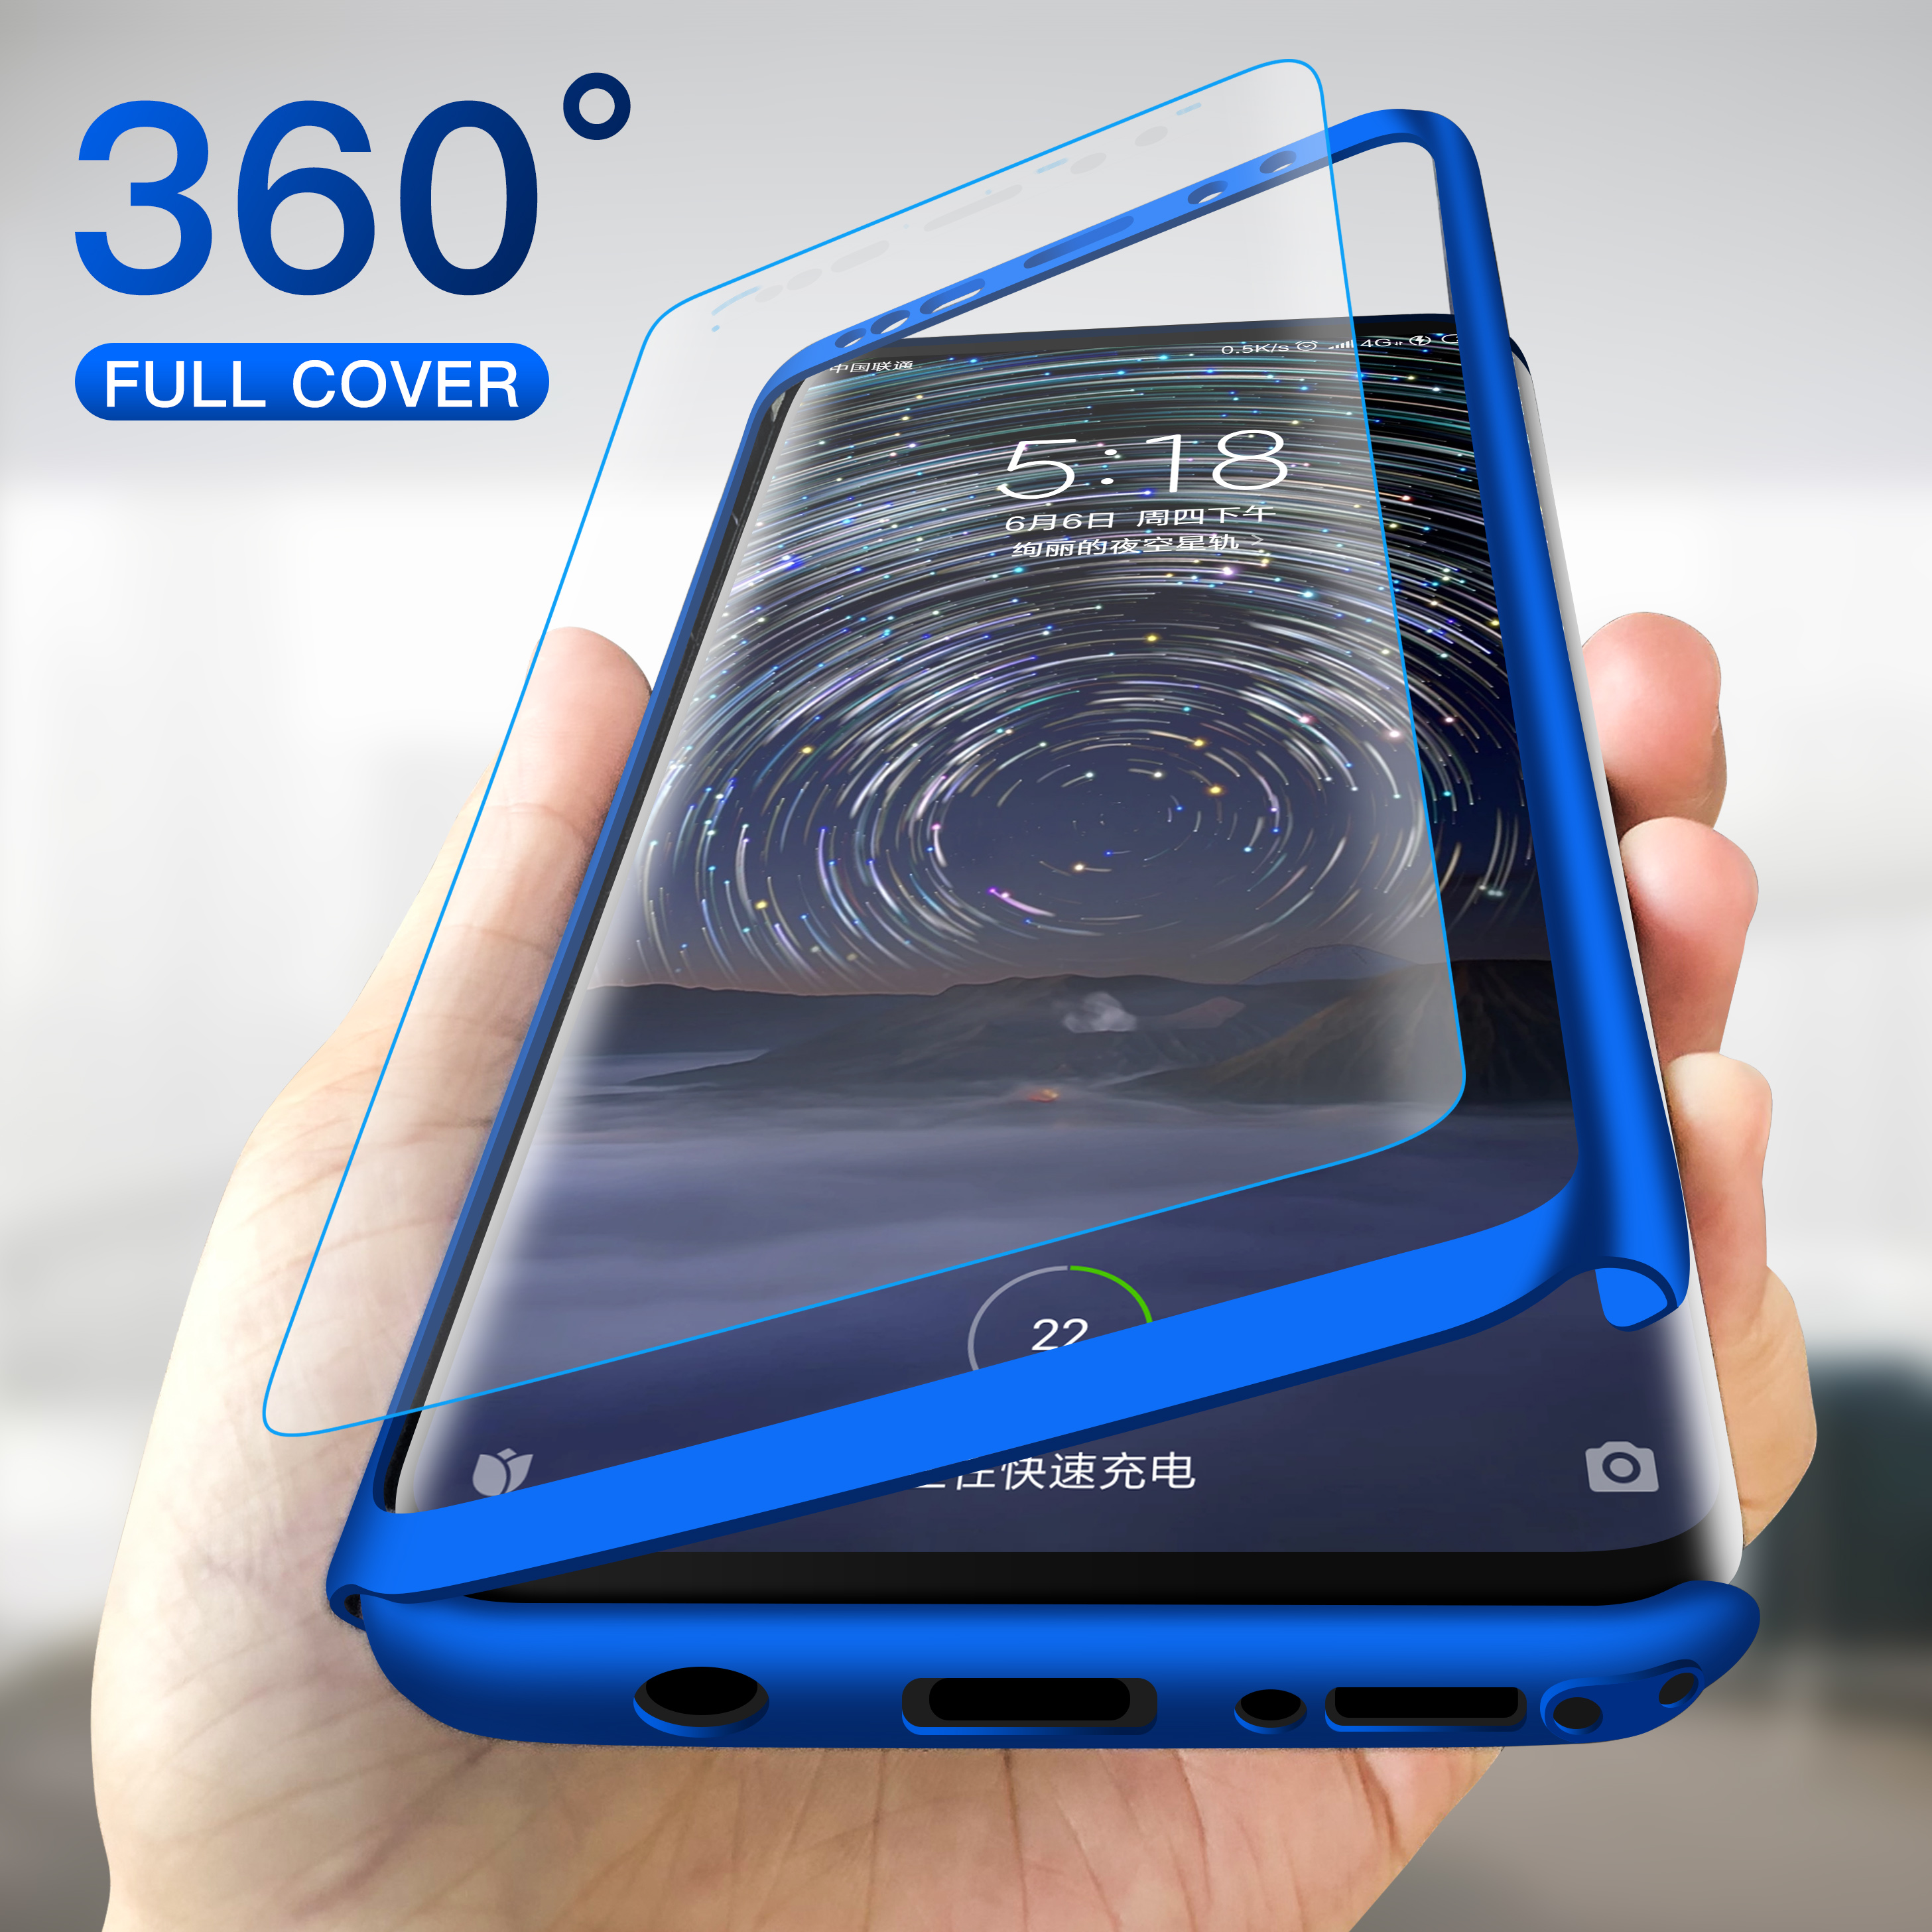 Luxury 360 Full <font><b>Cover</b></font> phone Case For <font><b>Samsung</b></font> <font><b>Galaxy</b></font> <font><b>A3</b></font> A5 A7 A8 J1 J2 J3 J5 J7 ACE Prime 2015 2016 <font><b>2017</b></font> Protective <font><b>Back</b></font> <font><b>Cover</b></font> image